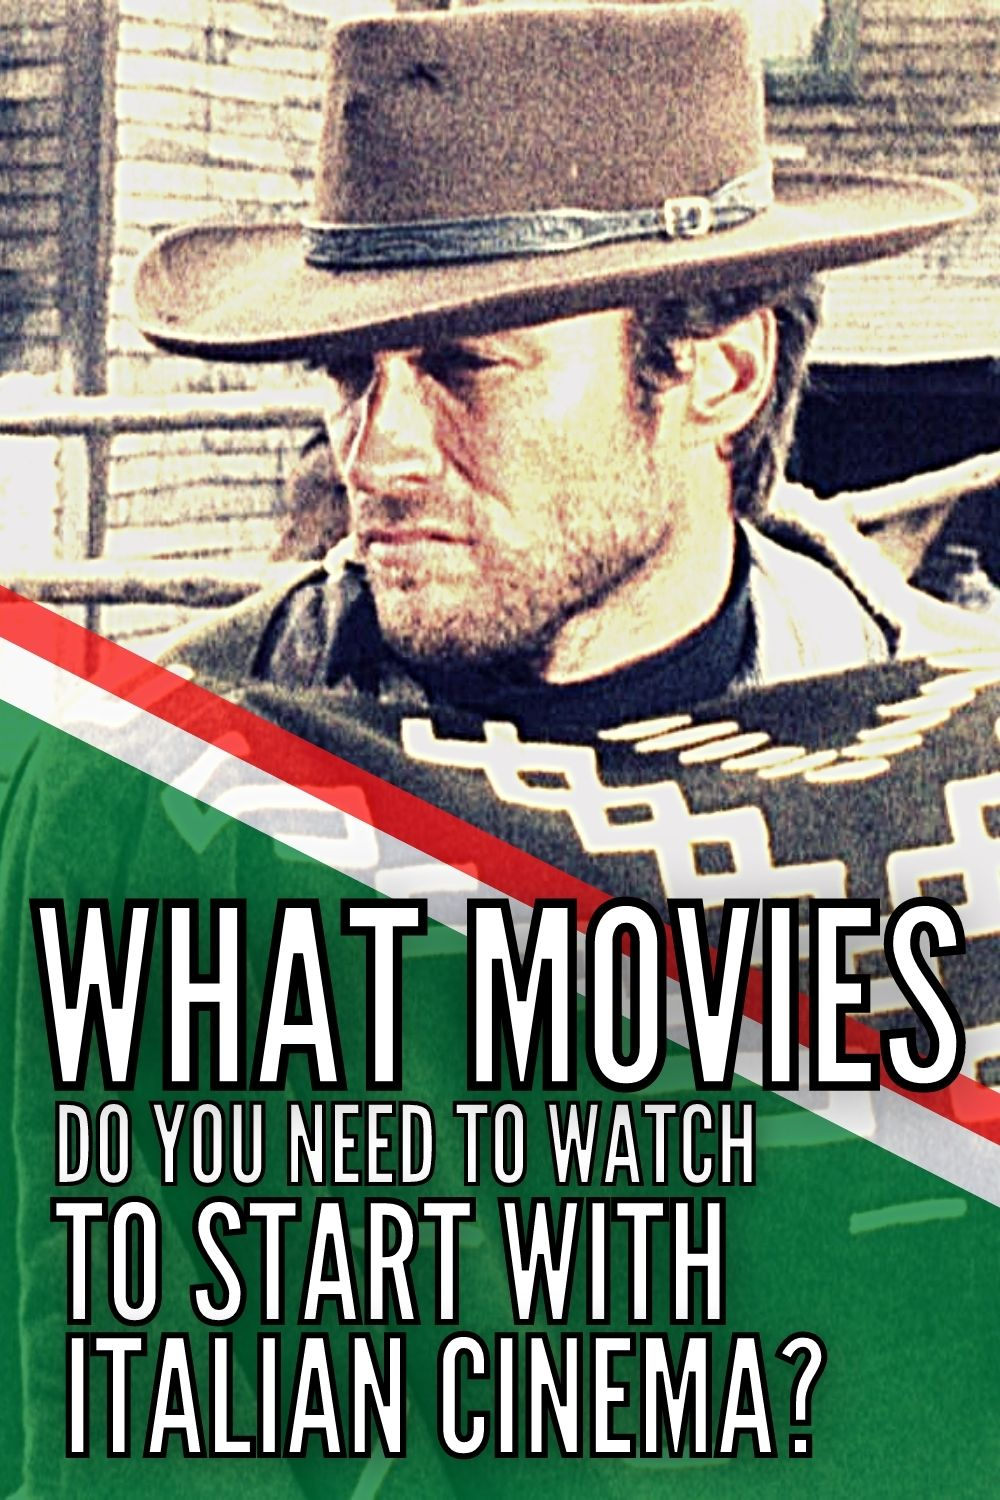 What movies do you need to watch to start with italian cinema?